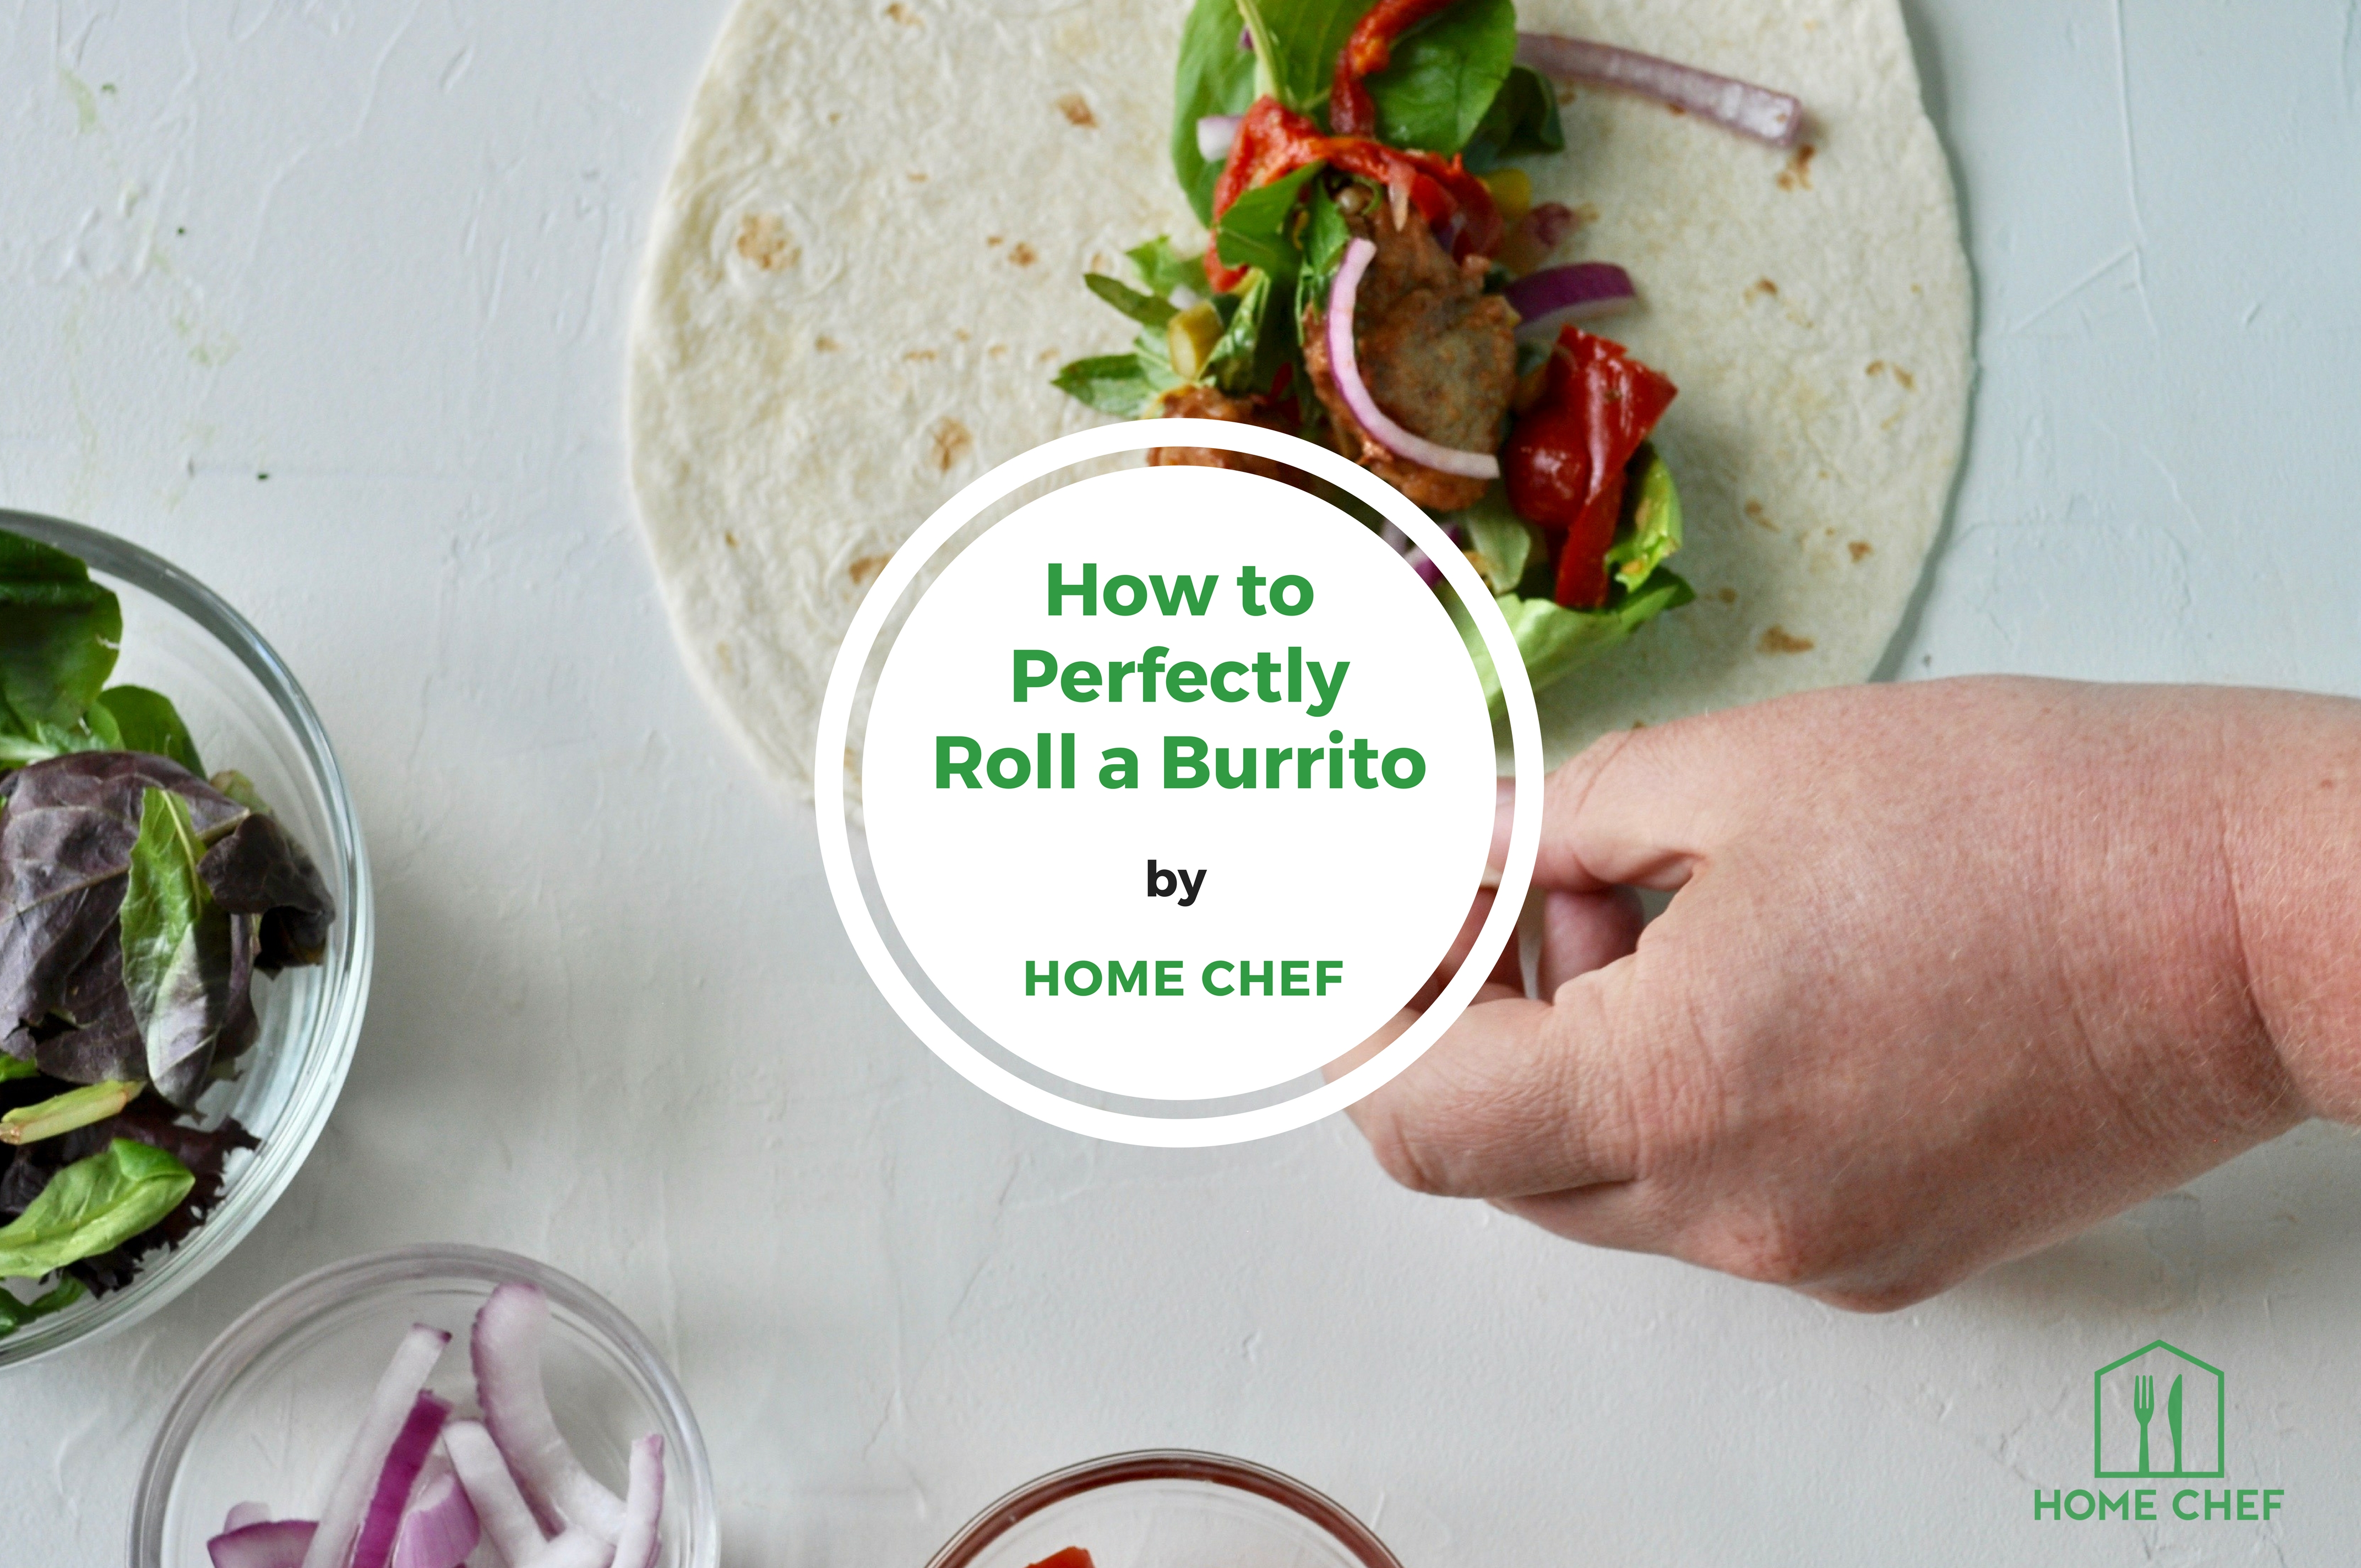 How to Perfectly Roll a Burrito - The Table